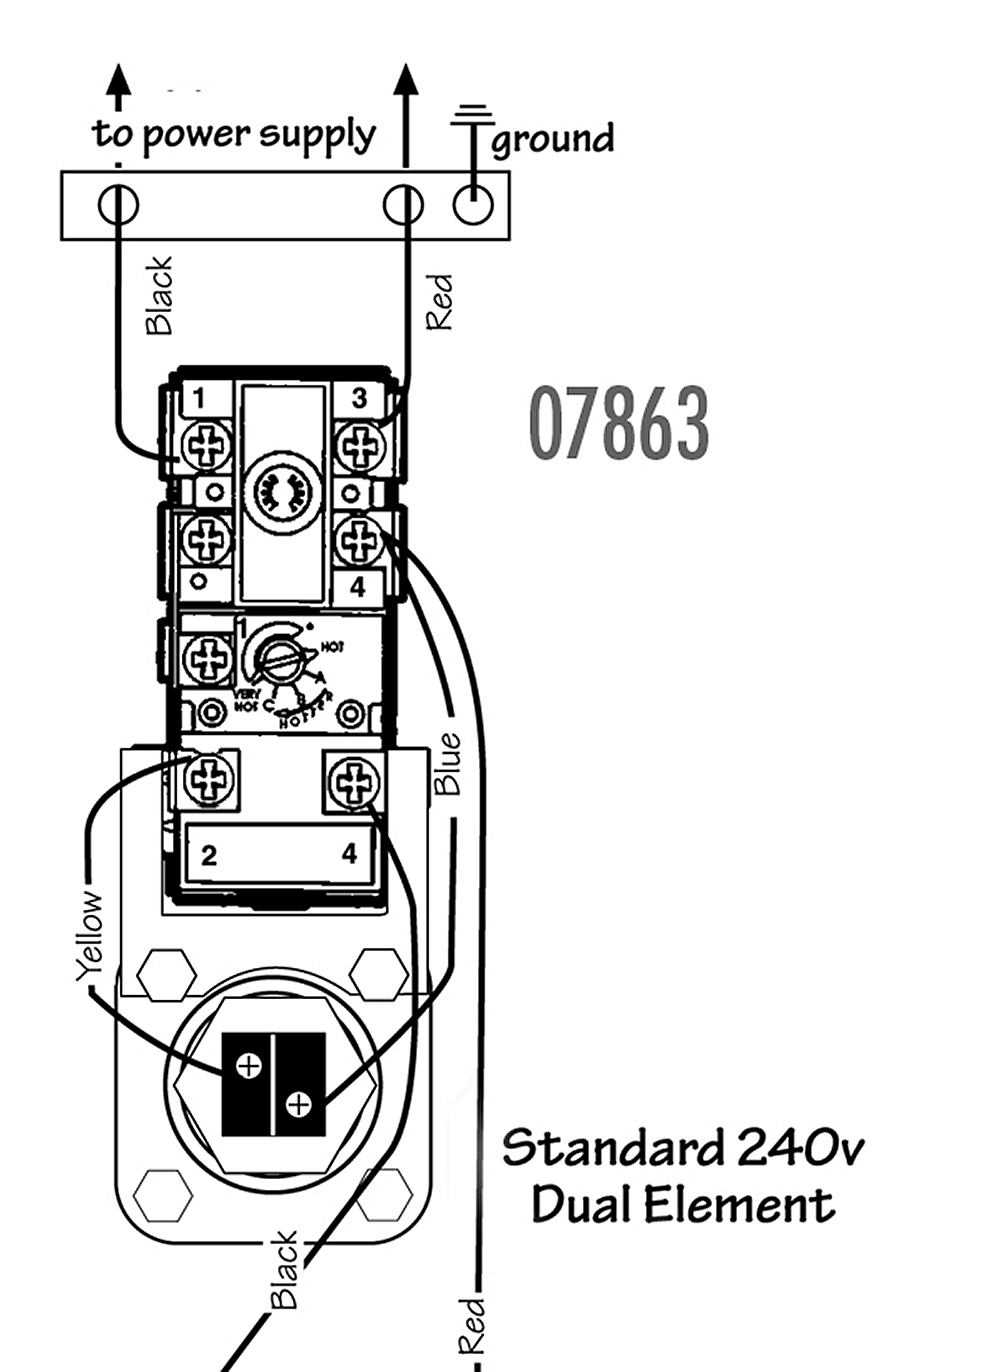 Wiring Diagram For Atwood Hot Water Heater In A Laredo Camper from media.suthlbr.com